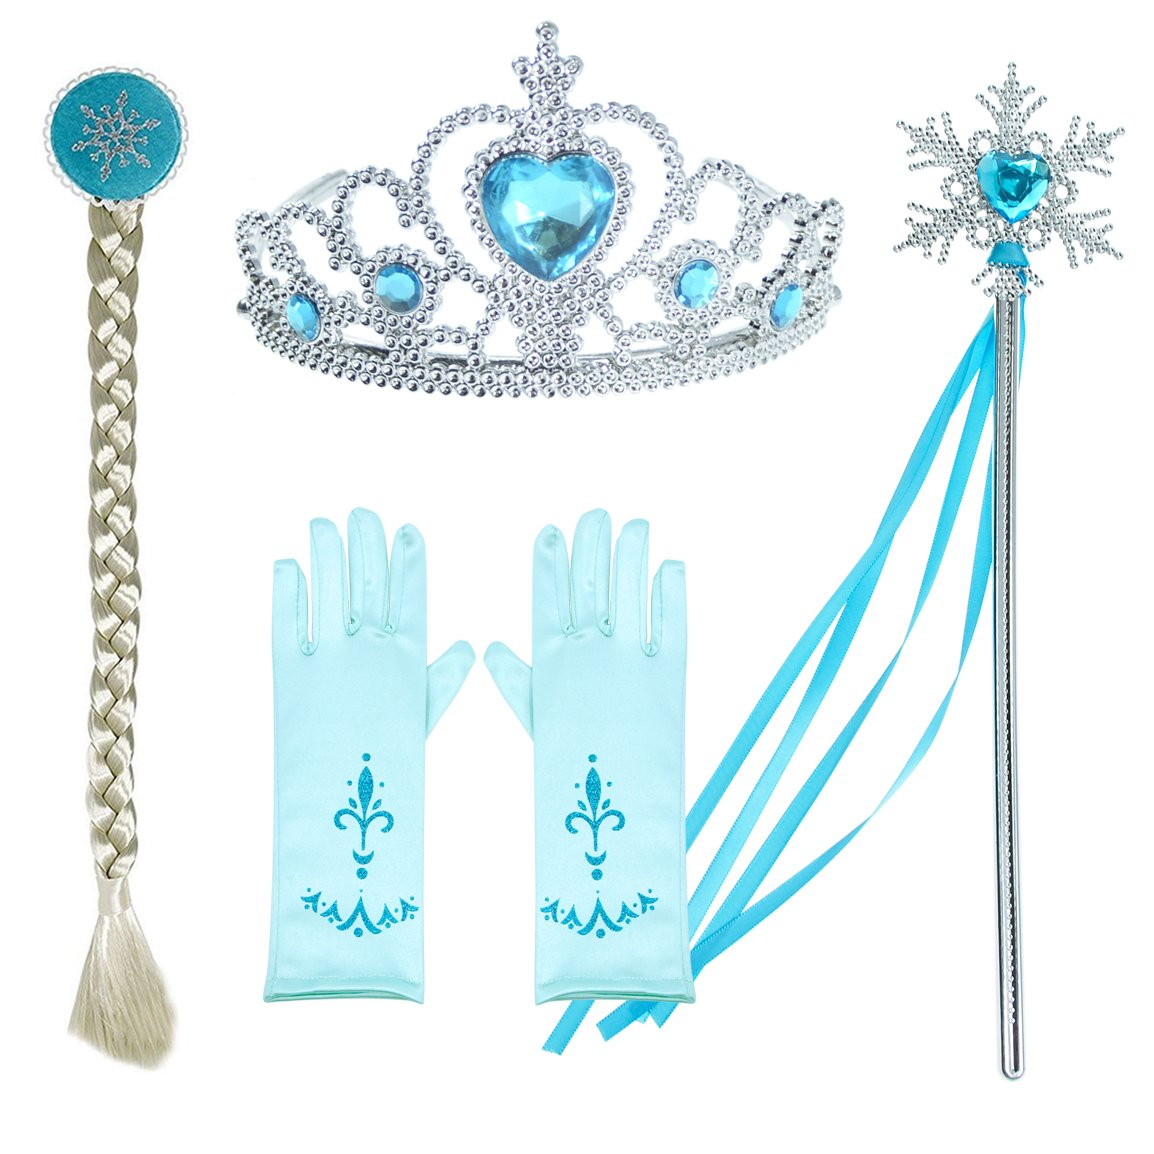 Princess Snow Queen Elsa Costumes Fancy Party Birthday Dress Up For Girls with Accessories 4-5 Years(110cm) by Party Chili (Image #2)